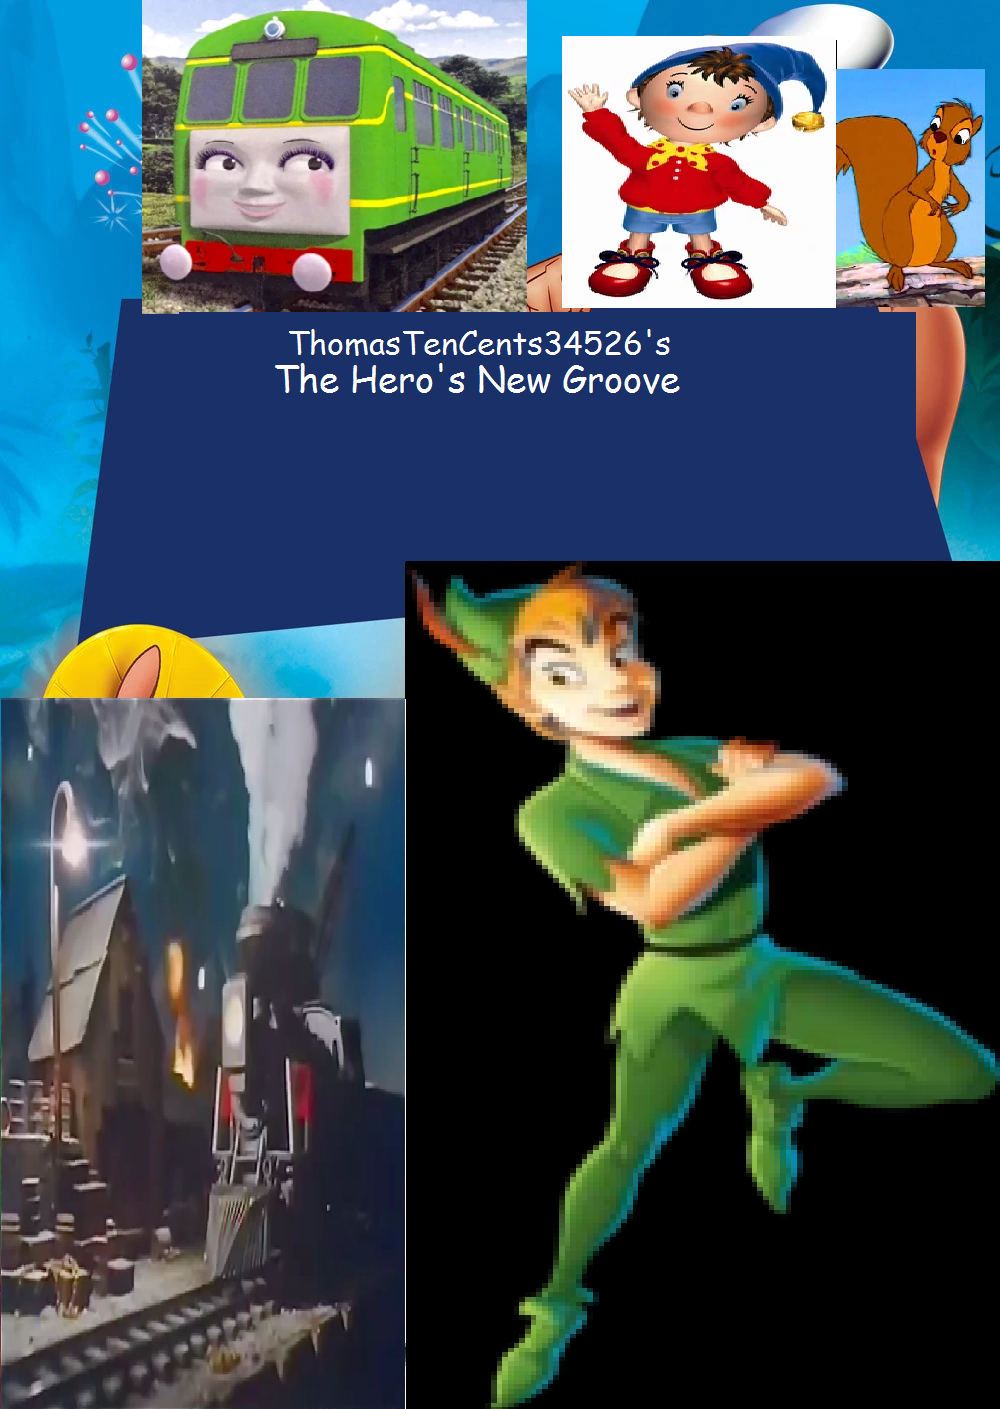 The Hero's New Groove (ThomasTenCents34526's Style)